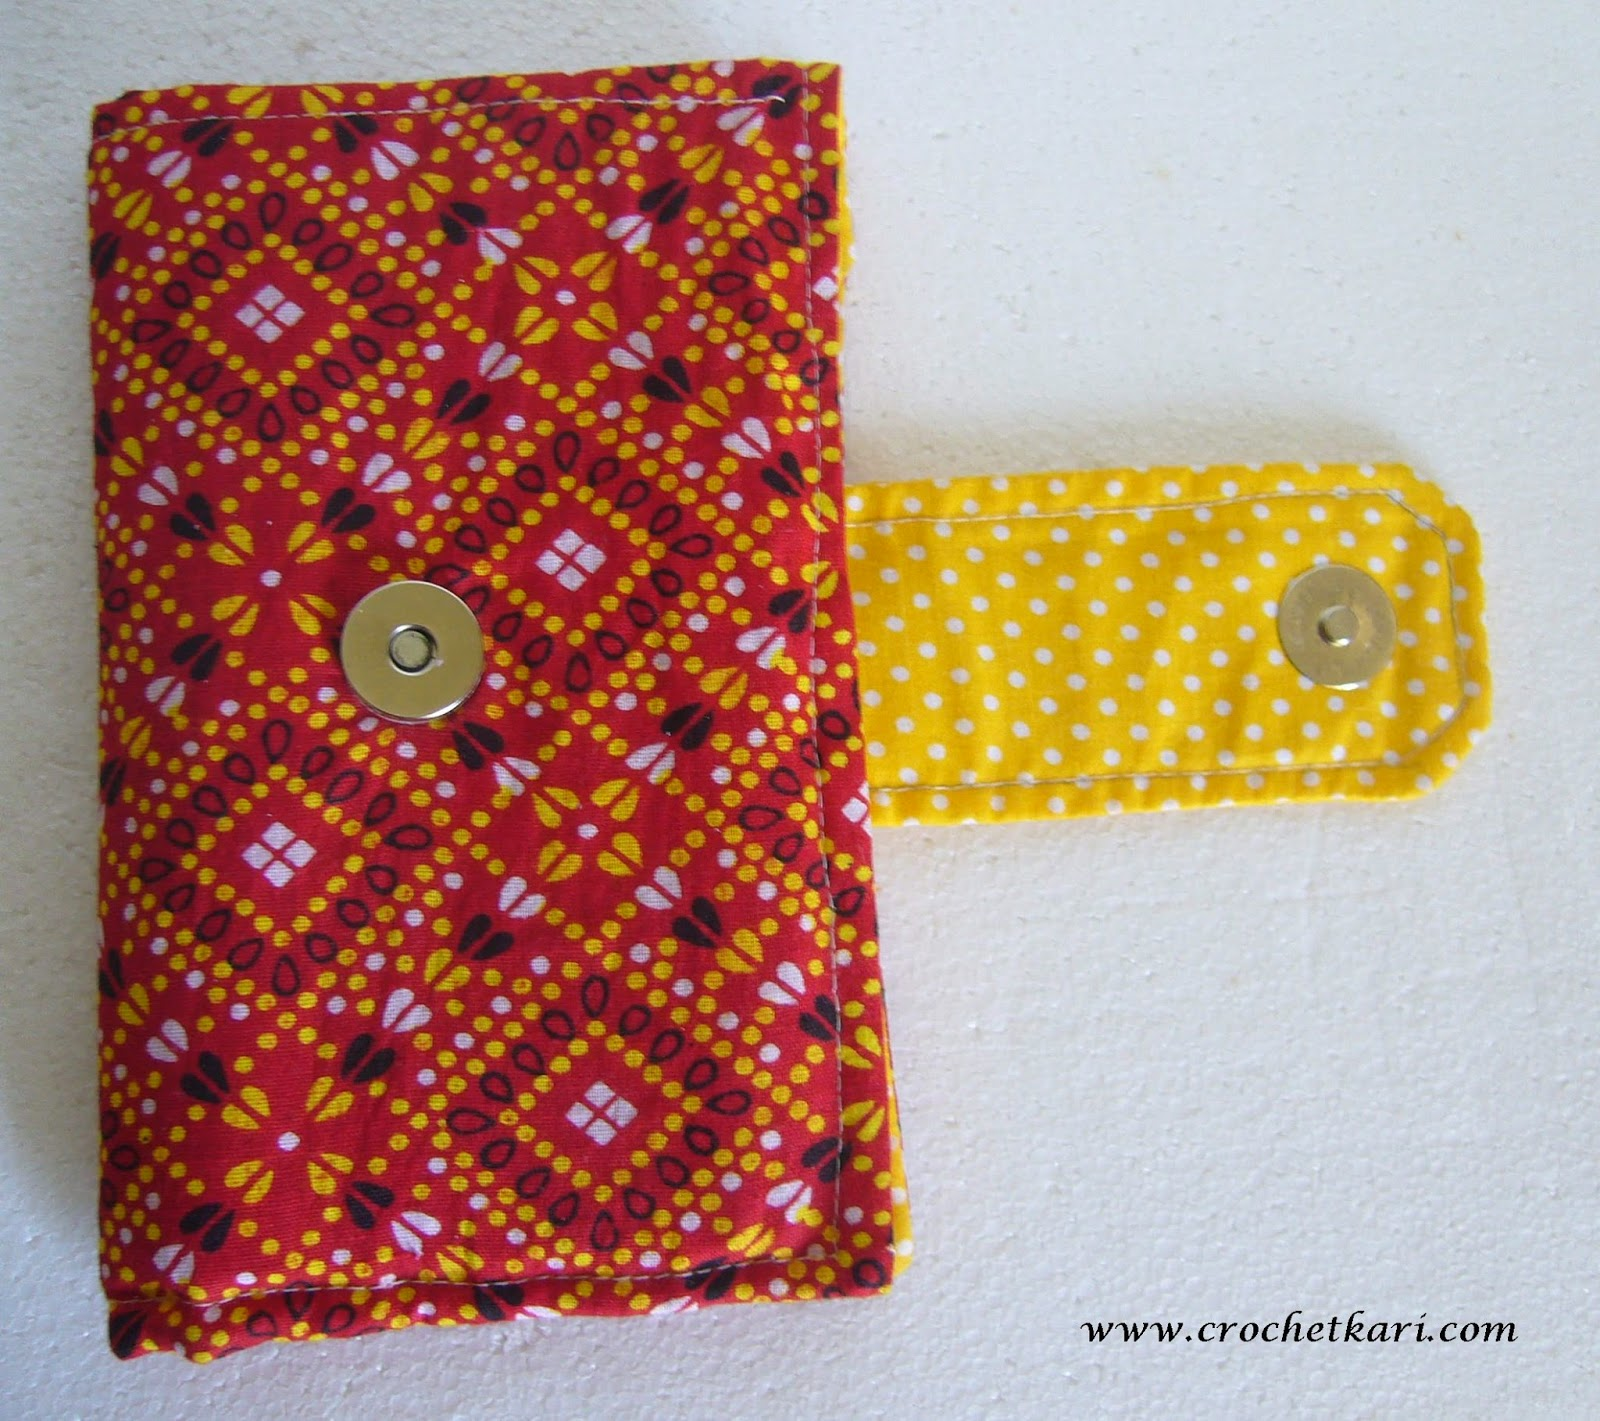 Crochet hook case crochetkari